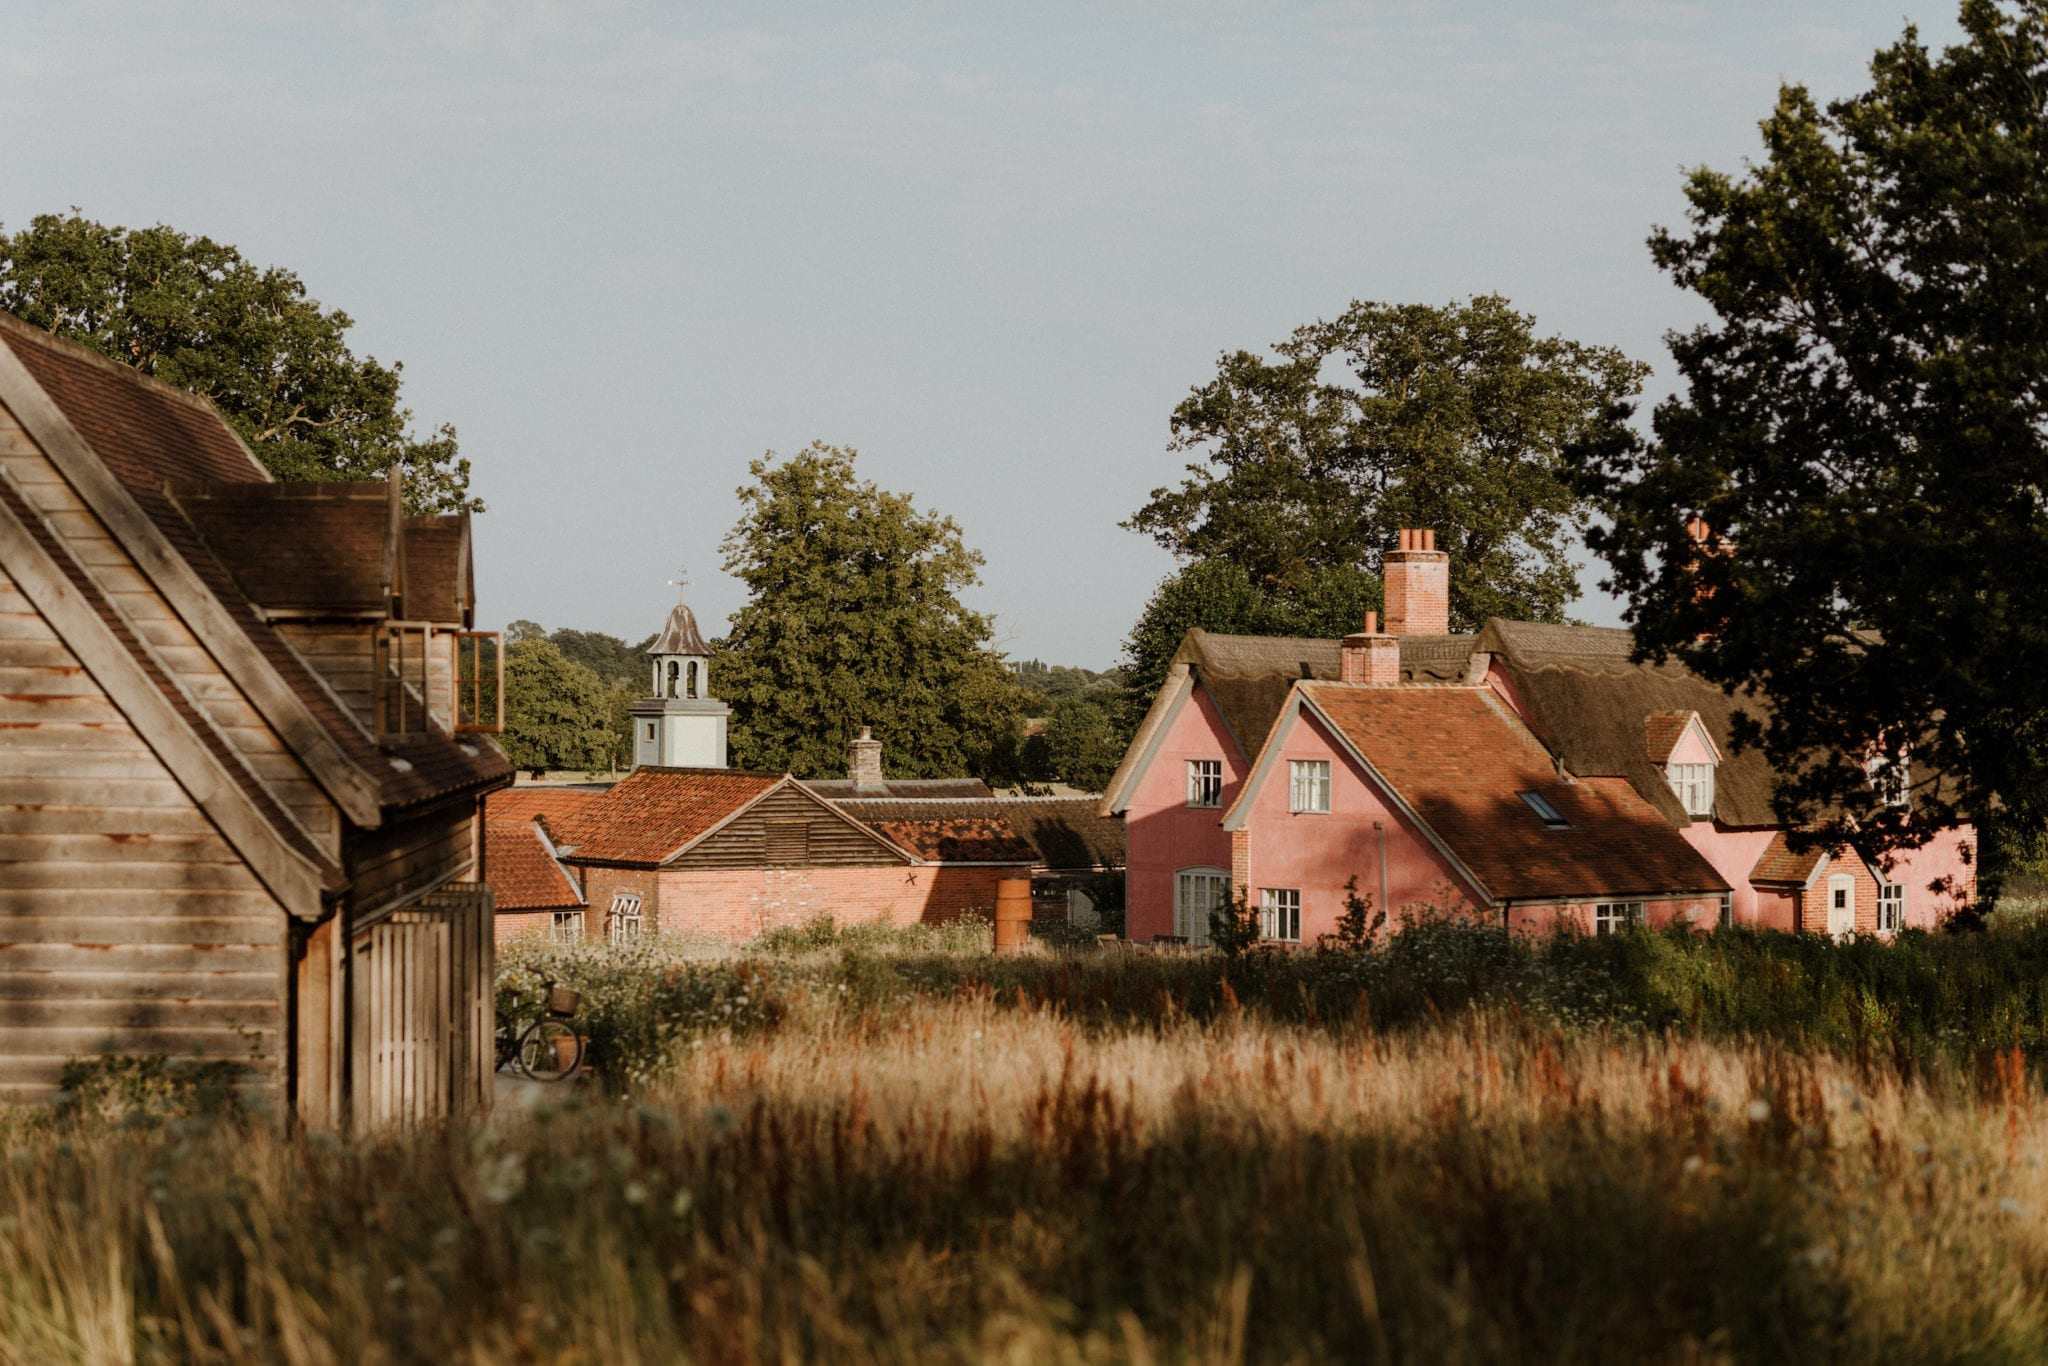 Guest cottages at Wilderness Reserve, Suffolk